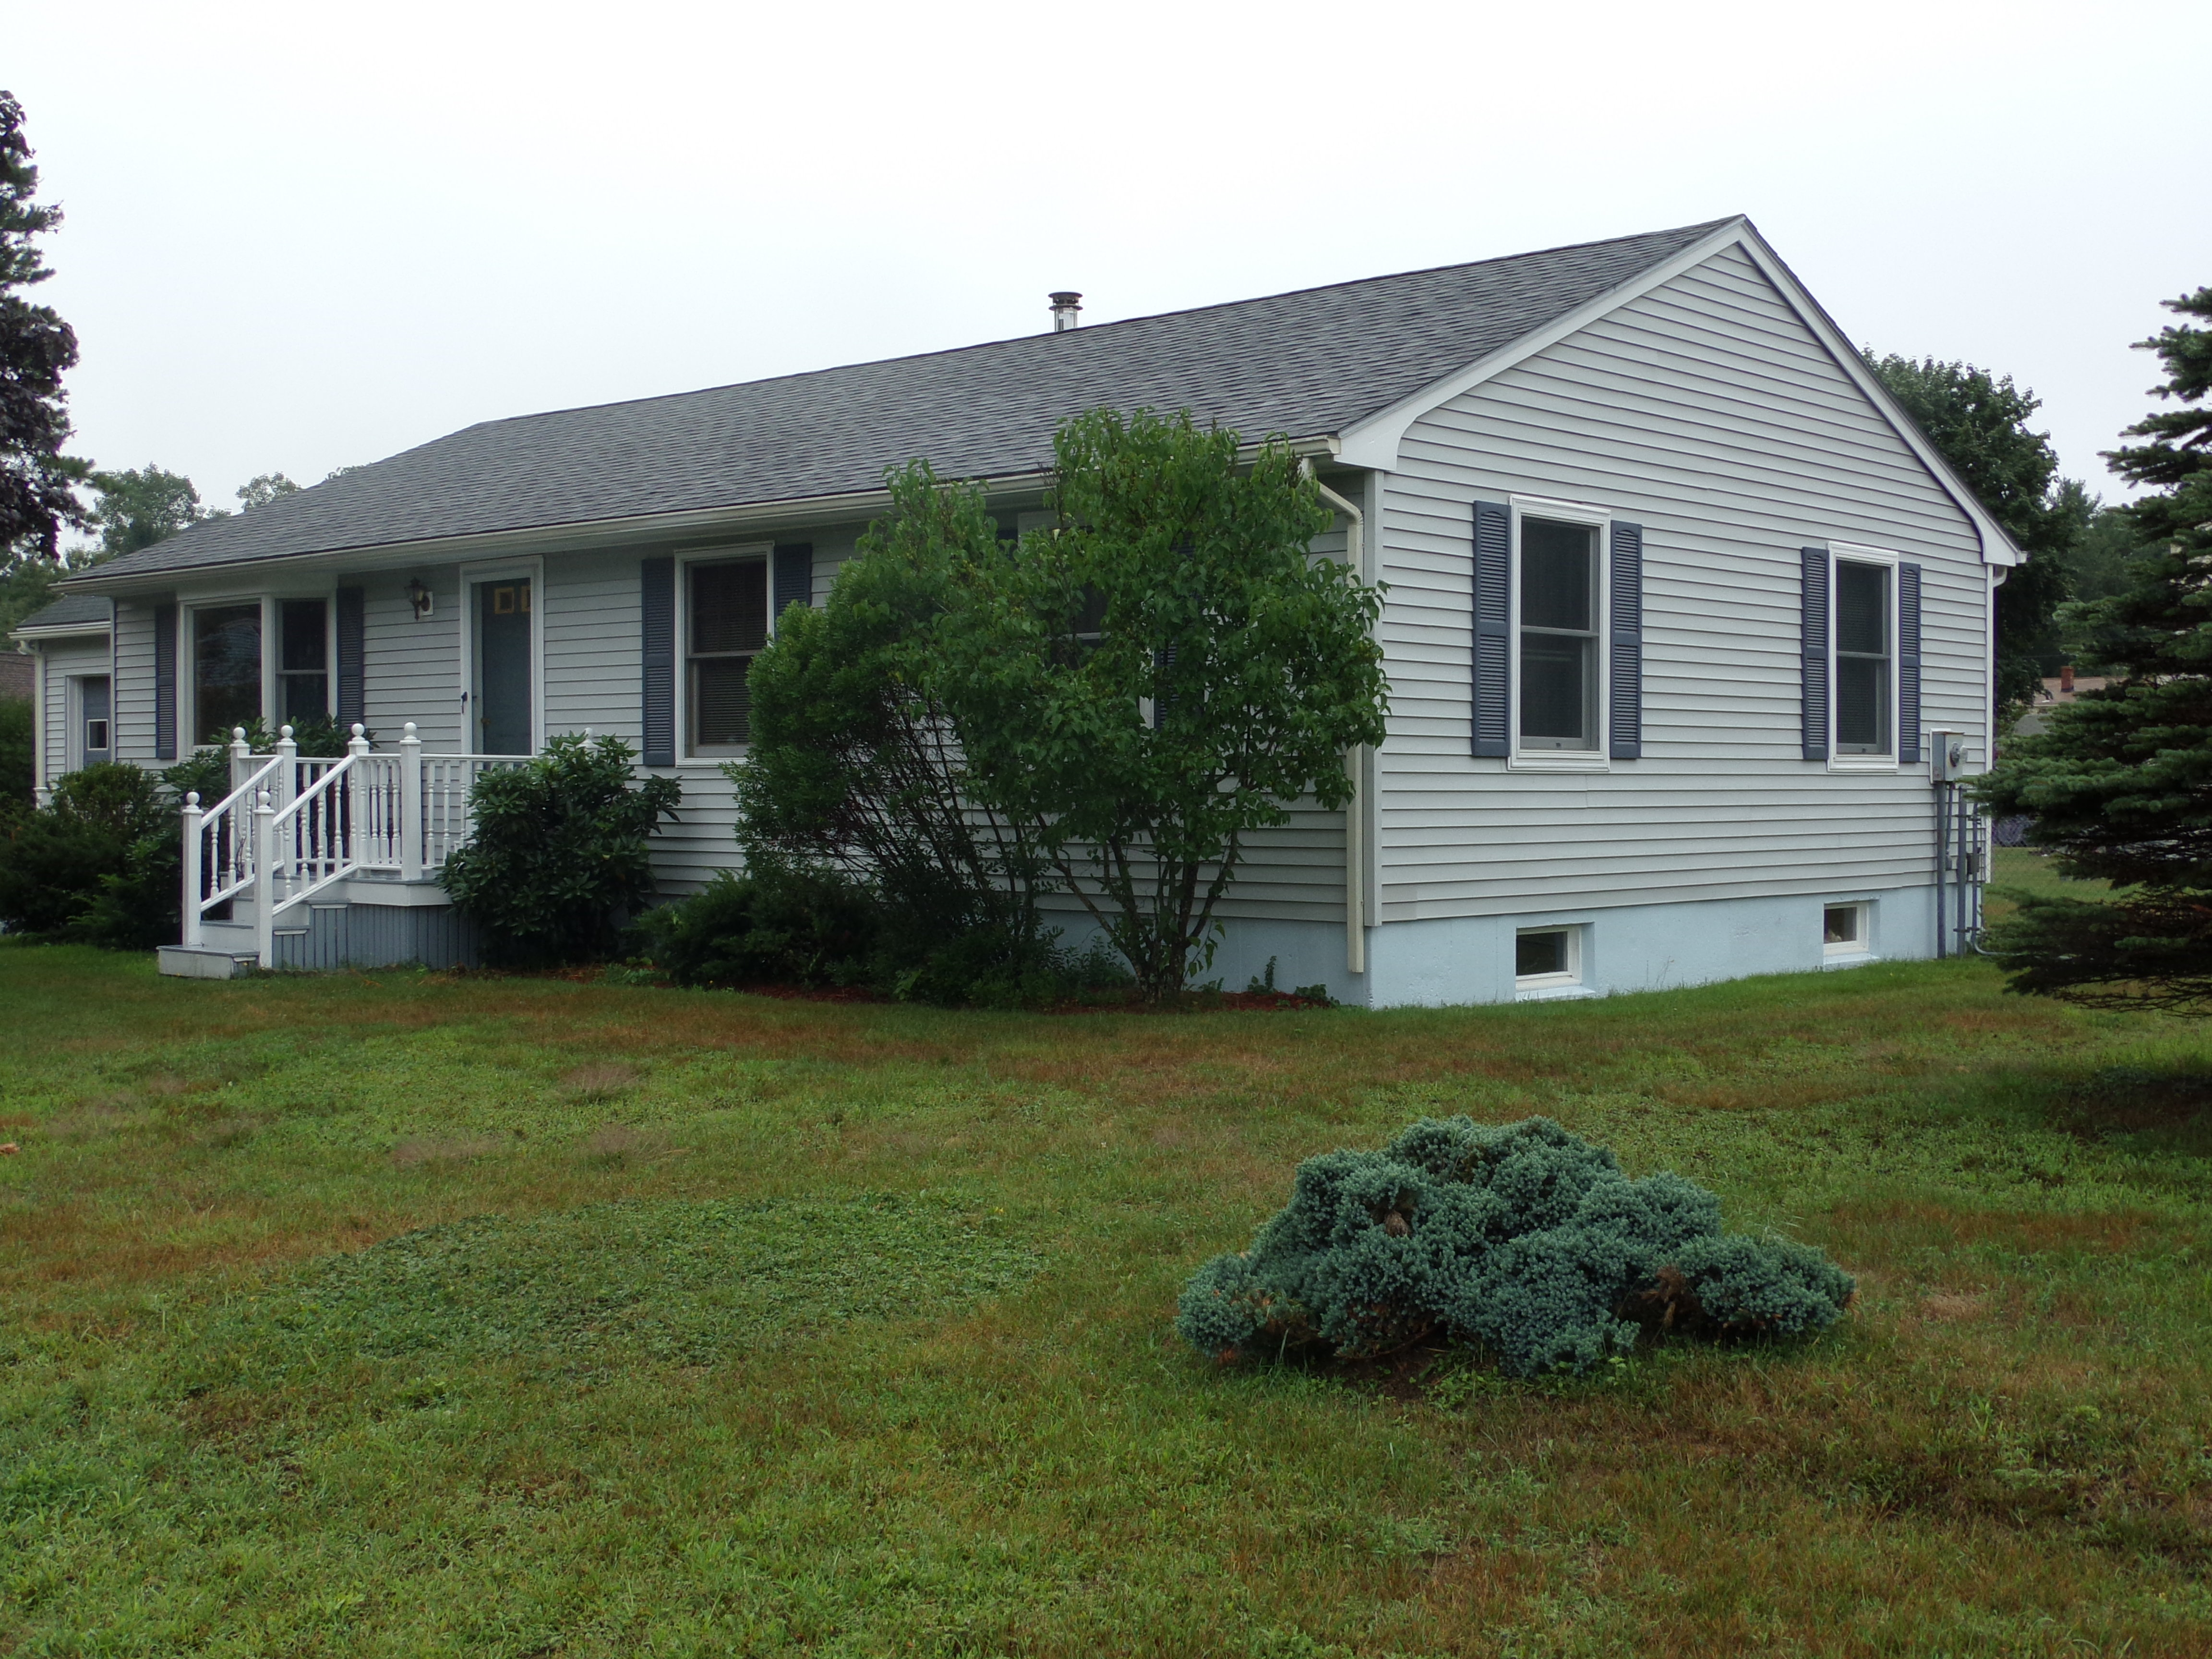 31 Cote Street, Somersworth, New Hampshire 03878